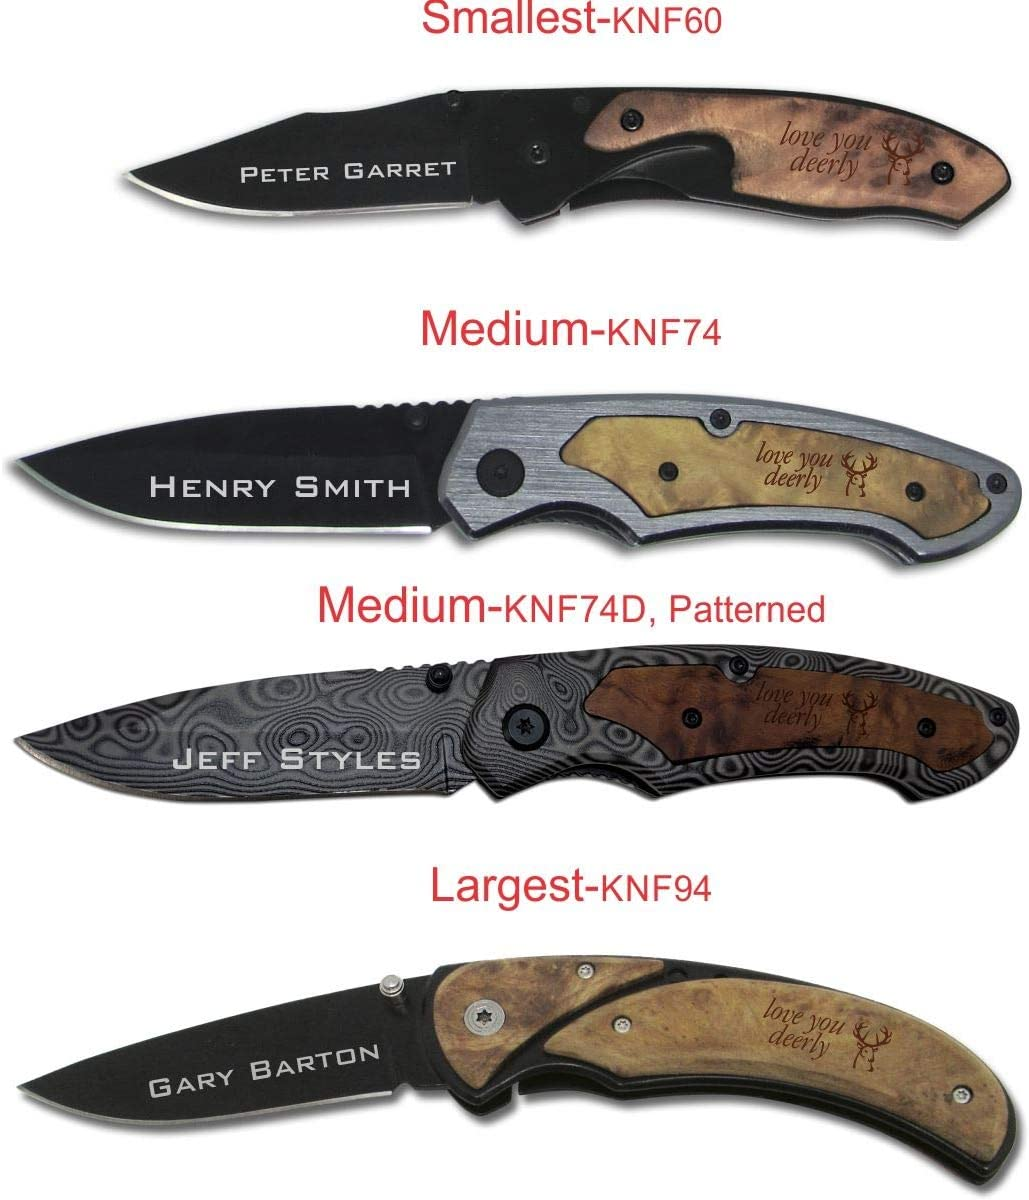 Personalized Pocket Knife With Wood Handle Laser Engraved with Buck Design Personalized Text